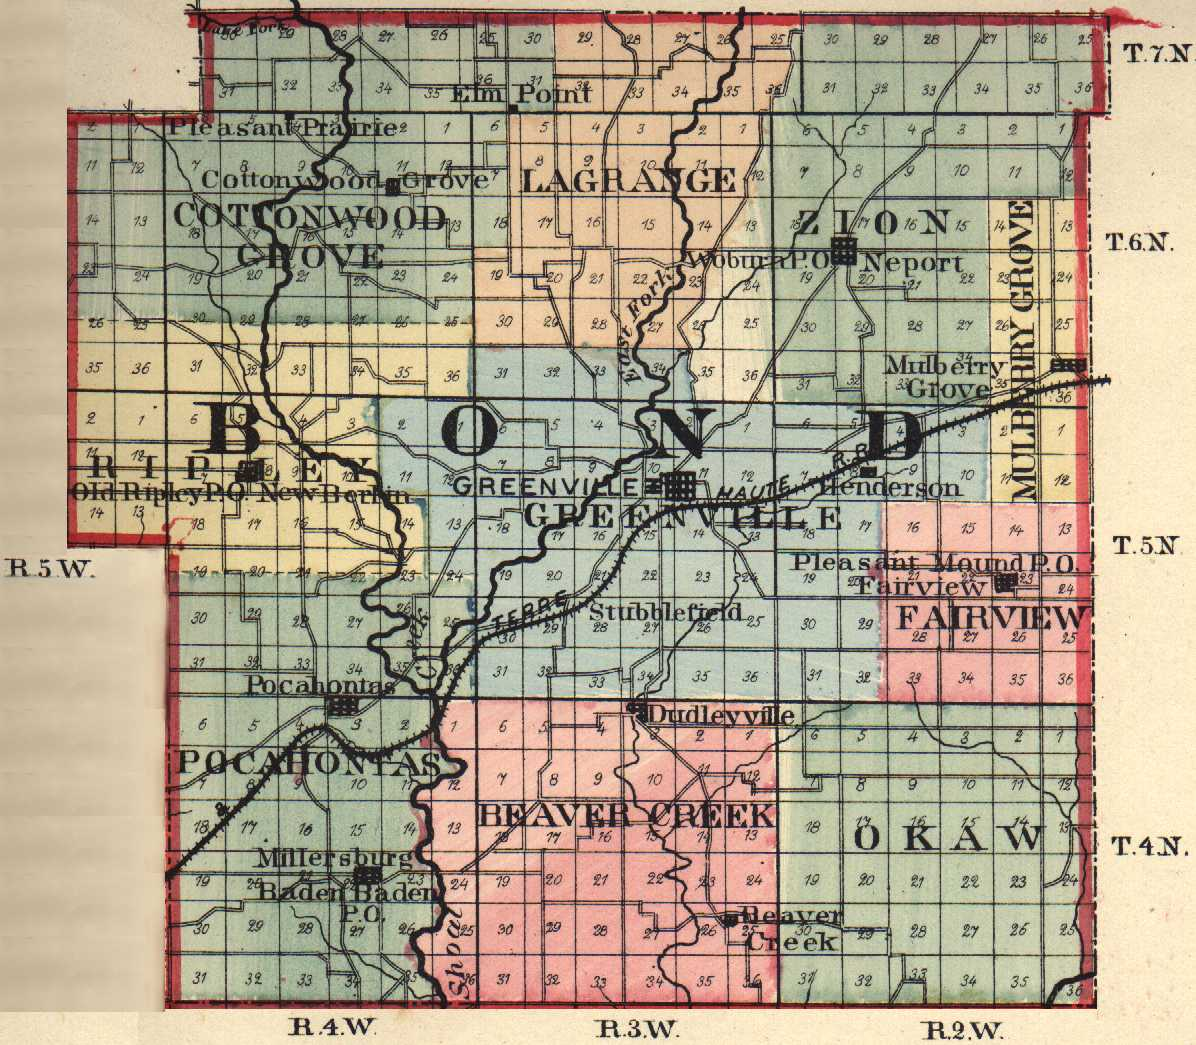 fayette county maps with Maps on Winchester 1 also School districts likewise SenecaCountyNY Centuryatlas 1912 as well Kentucky Counties Road Map Usa likewise Round Top Texas Street Map 4863524.